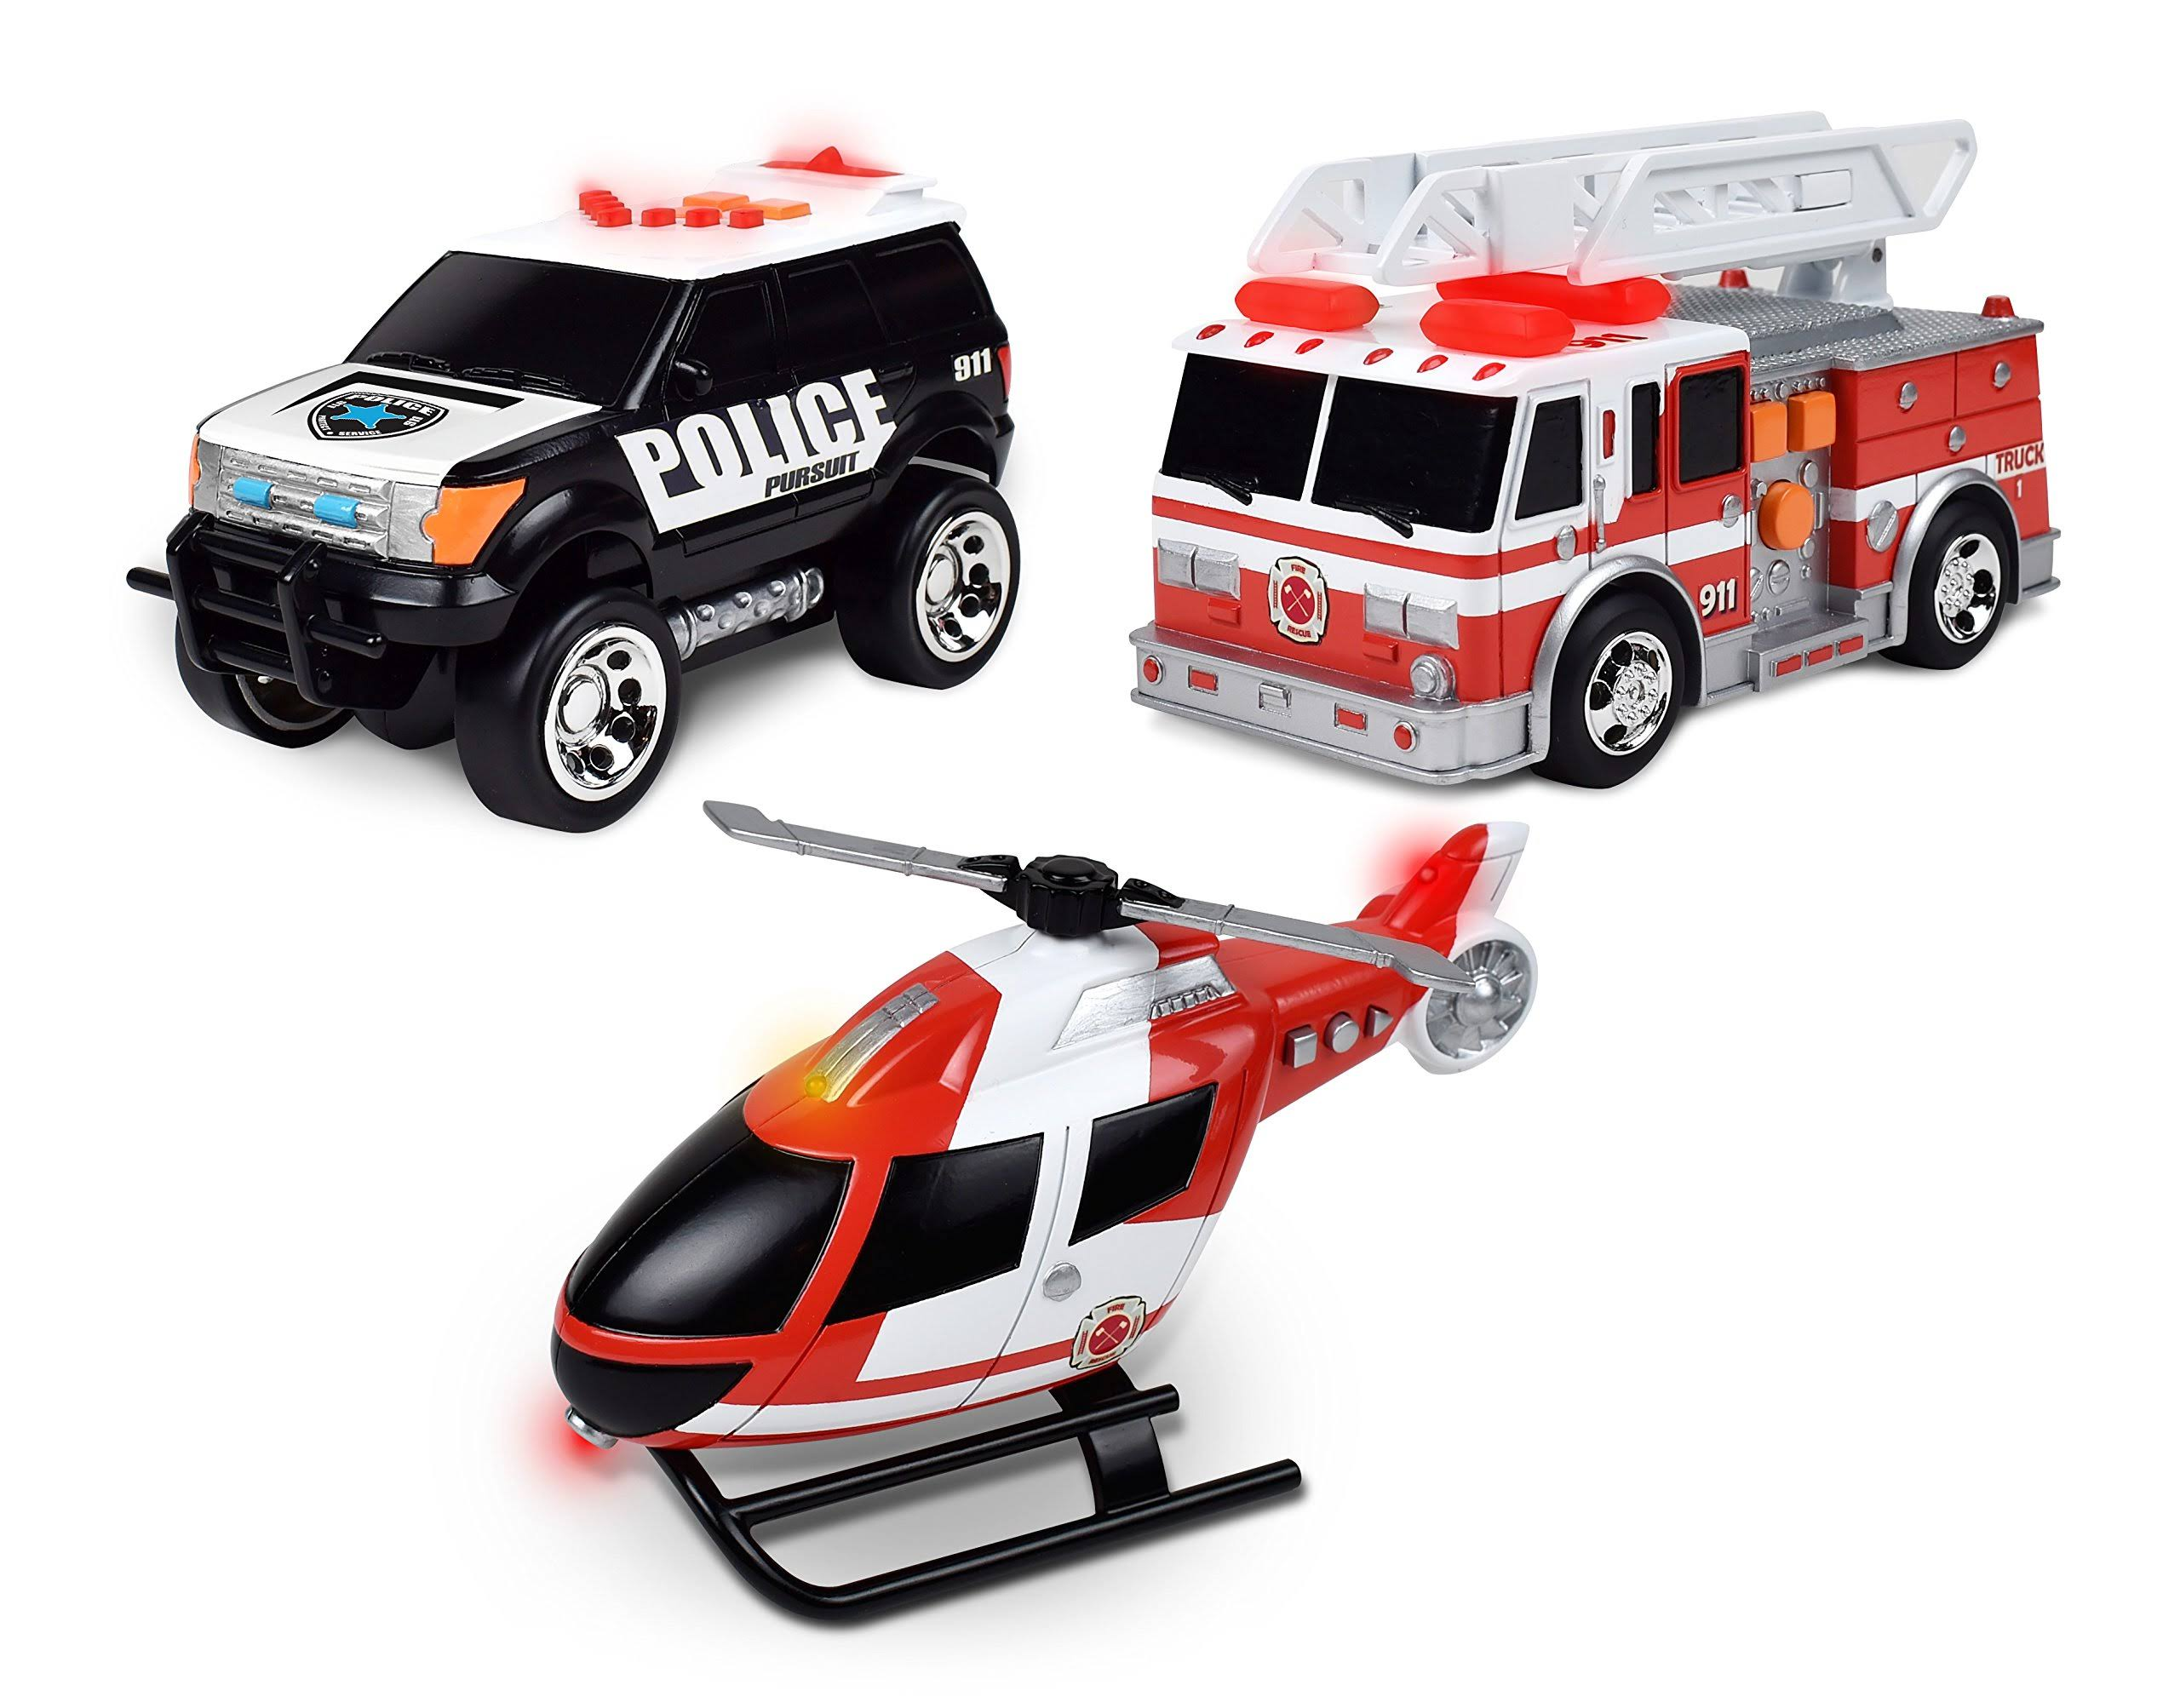 Maxx Action Mini Rescue Vehicles Toy Pack - 3pcs